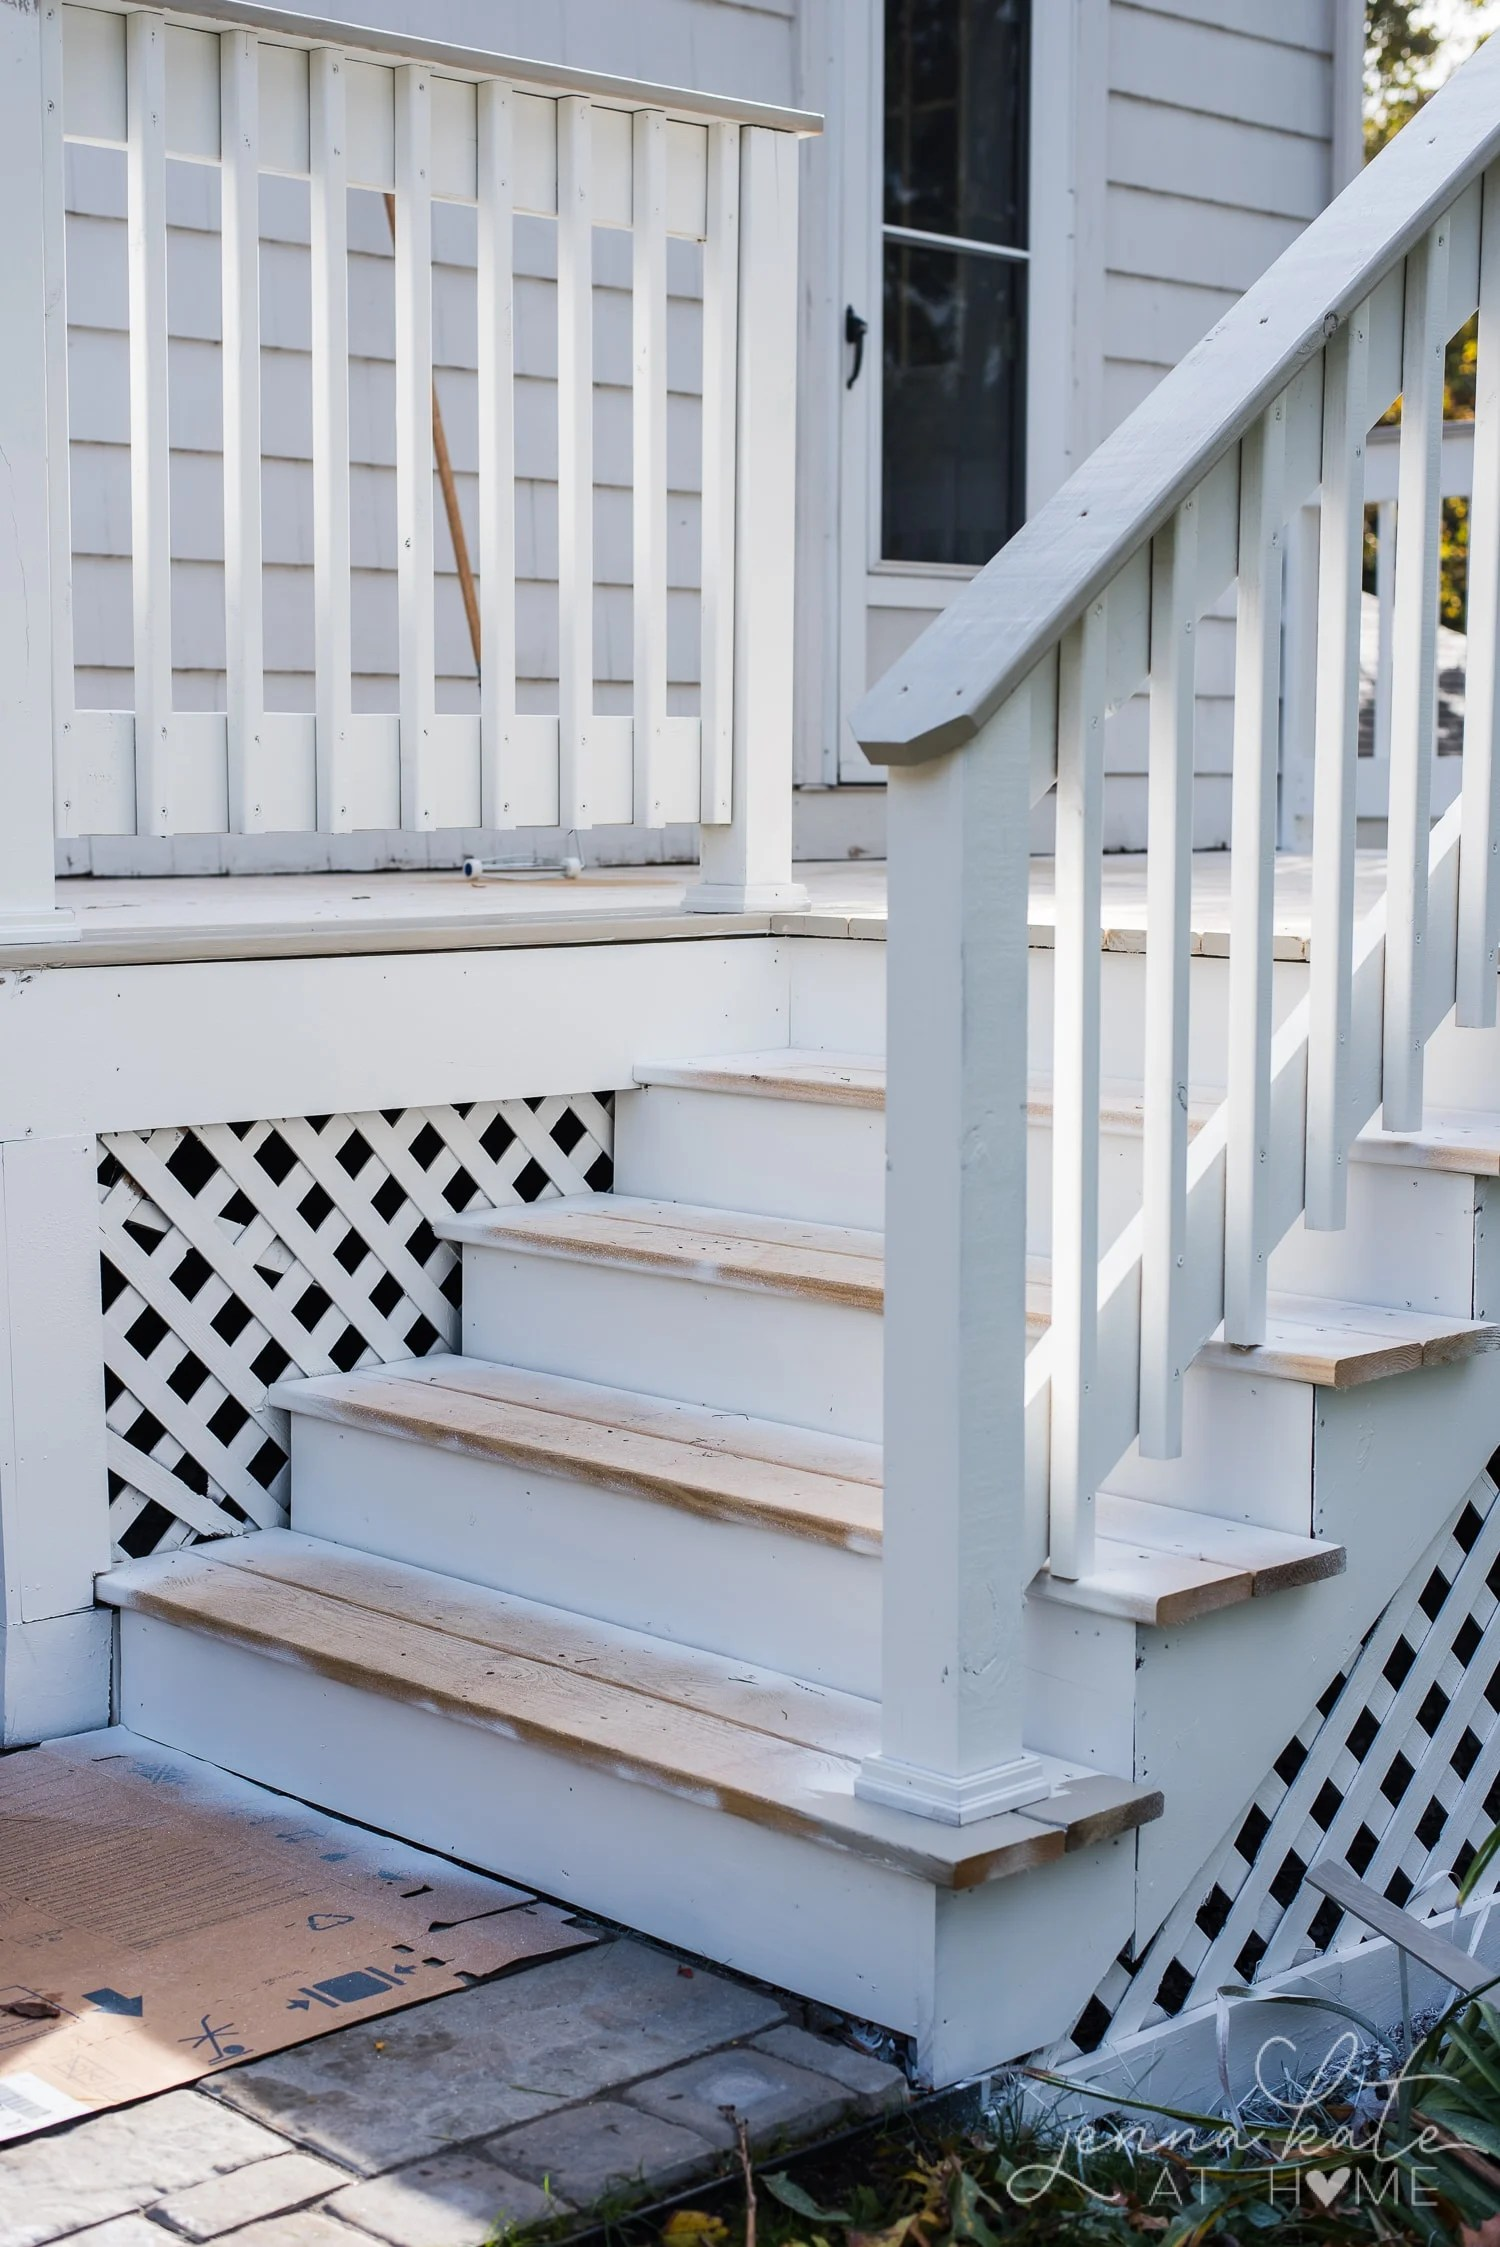 Spraying the deck white with a paint sprayer